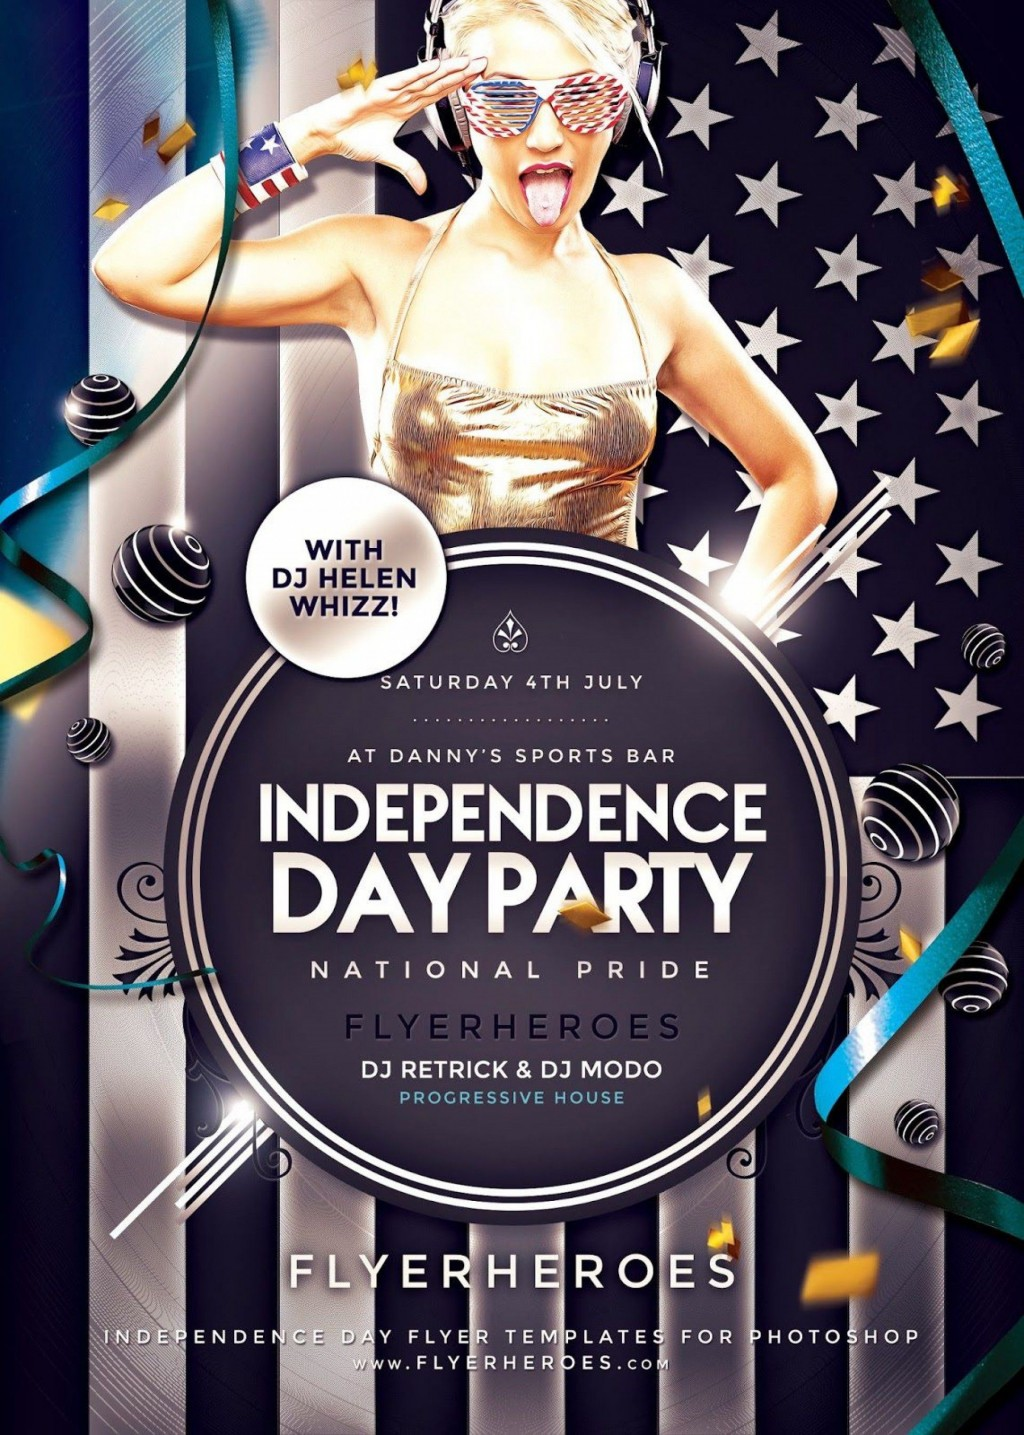 002 Imposing Free Party Flyer Template For Mac Design Large